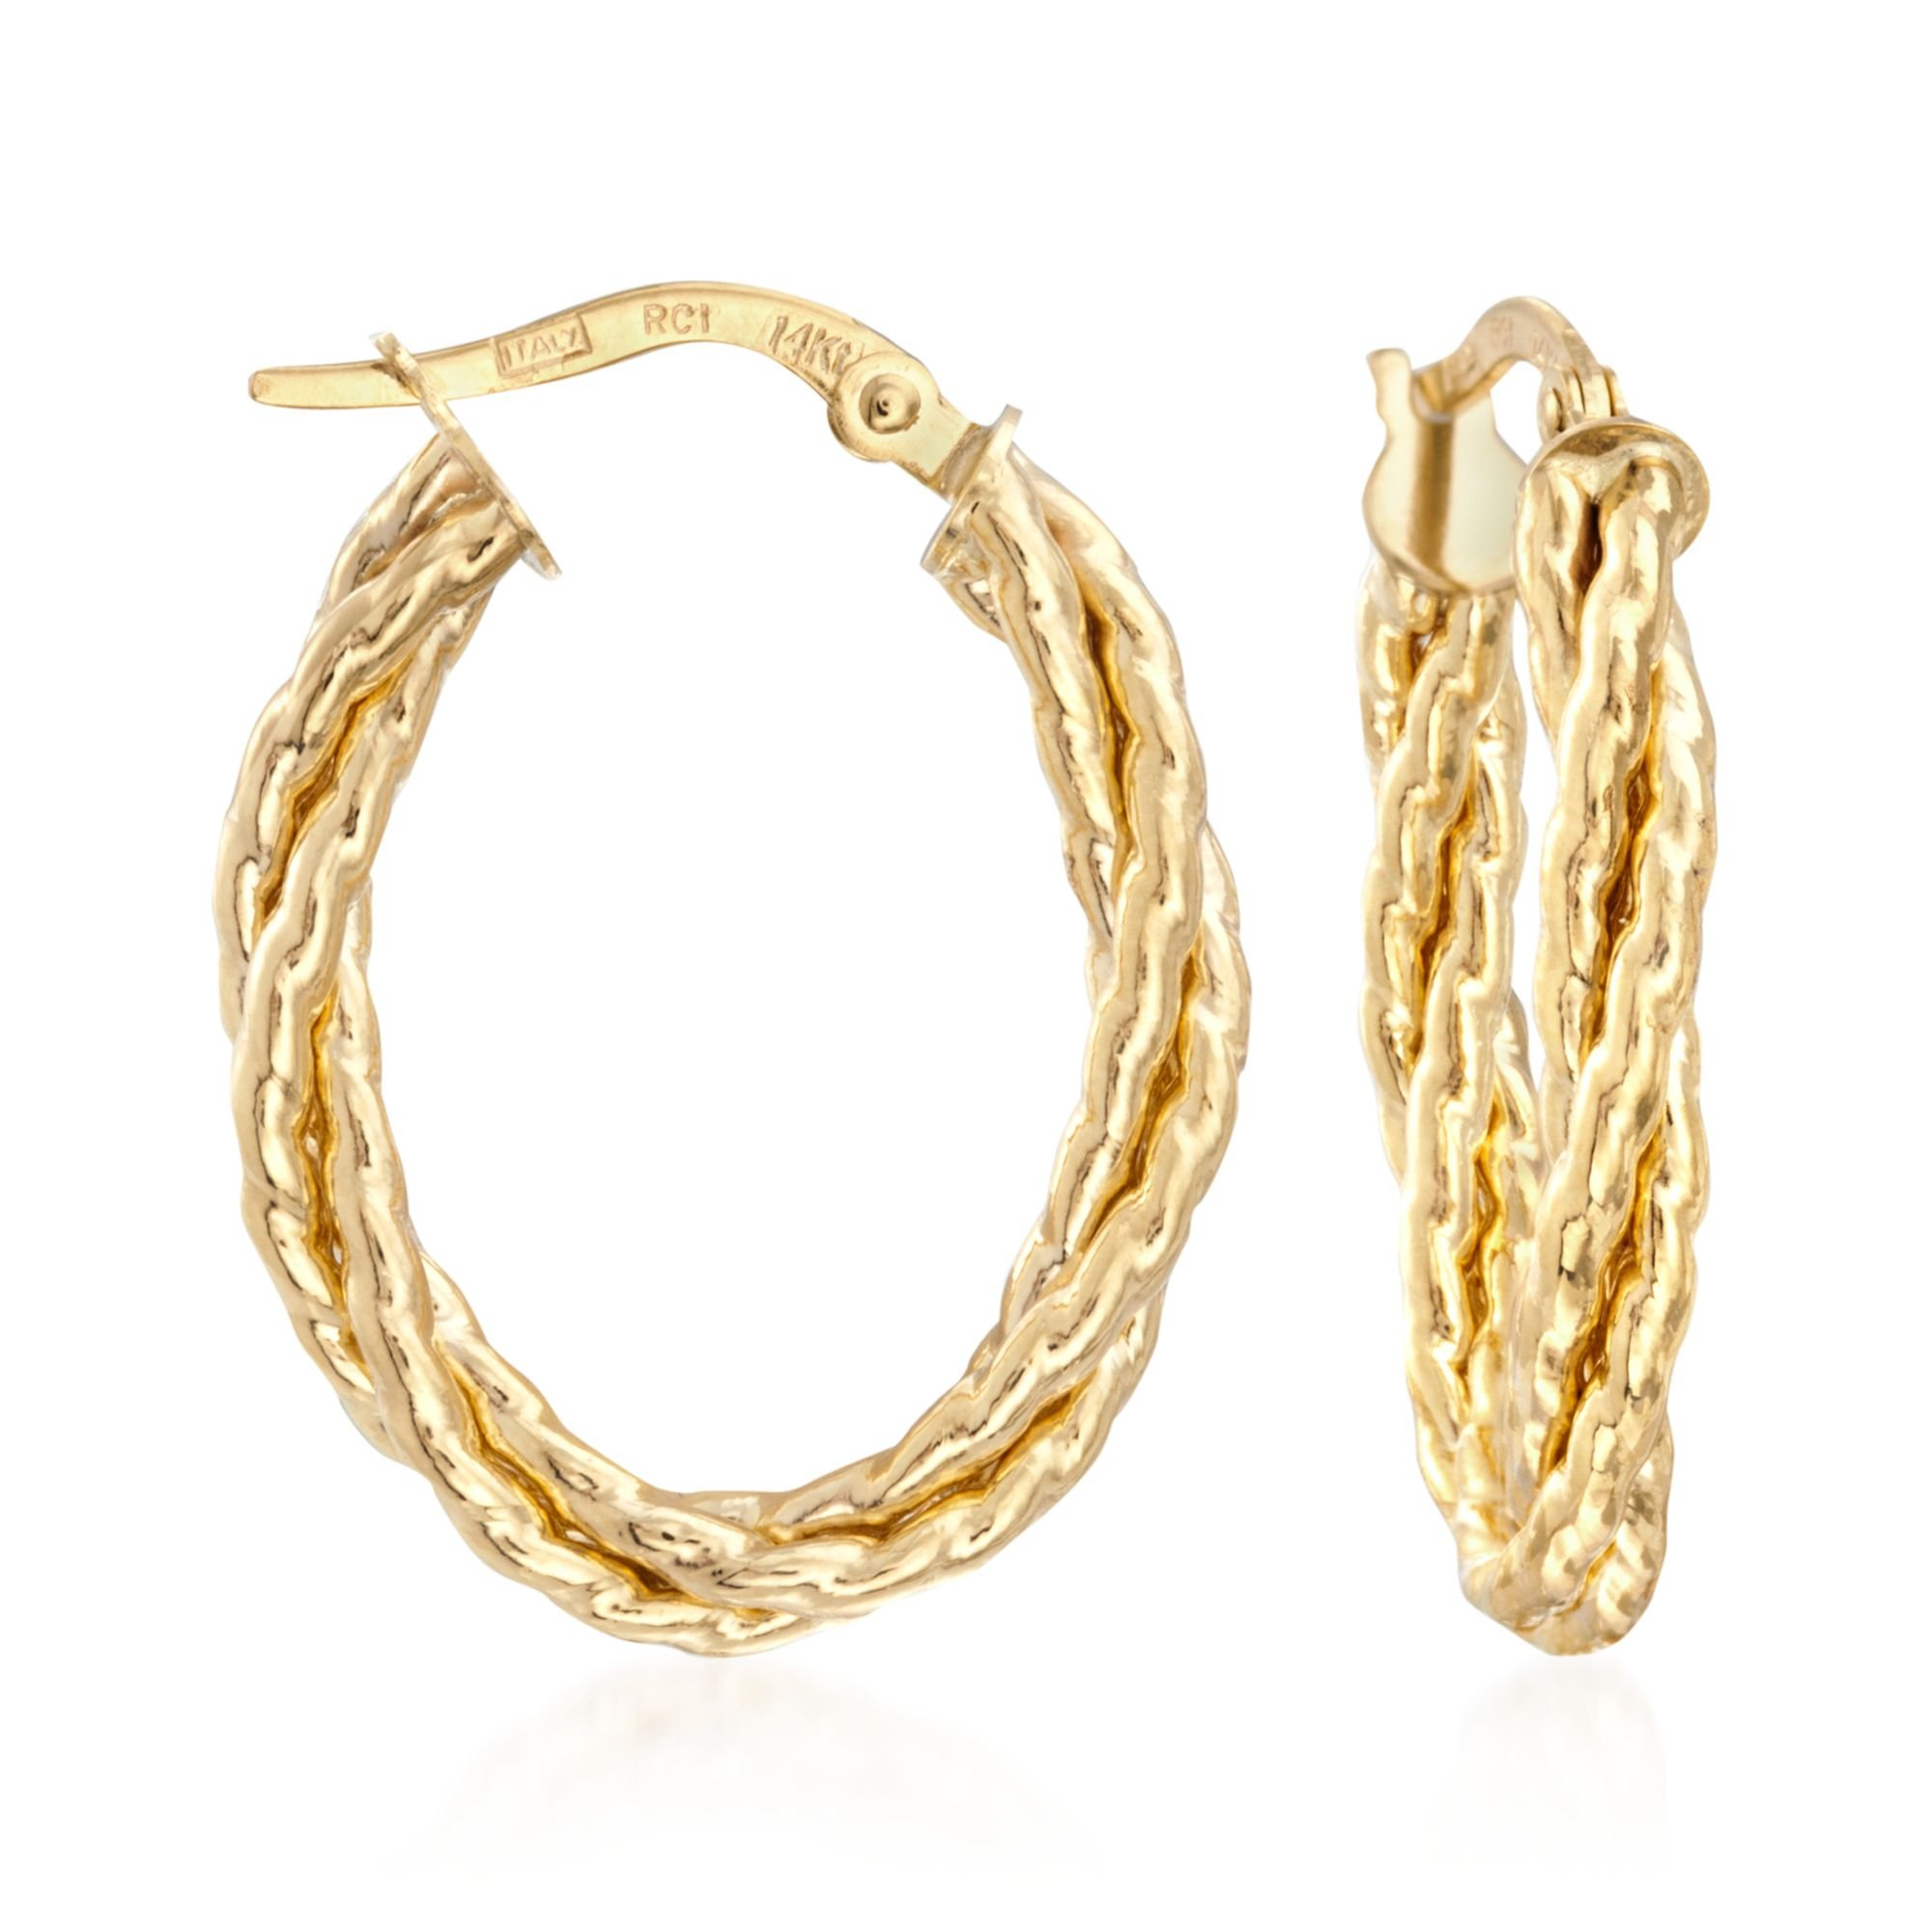 Ross-Simons Italian 14kt Yellow Gold Twisted Oval Hoop Earrings